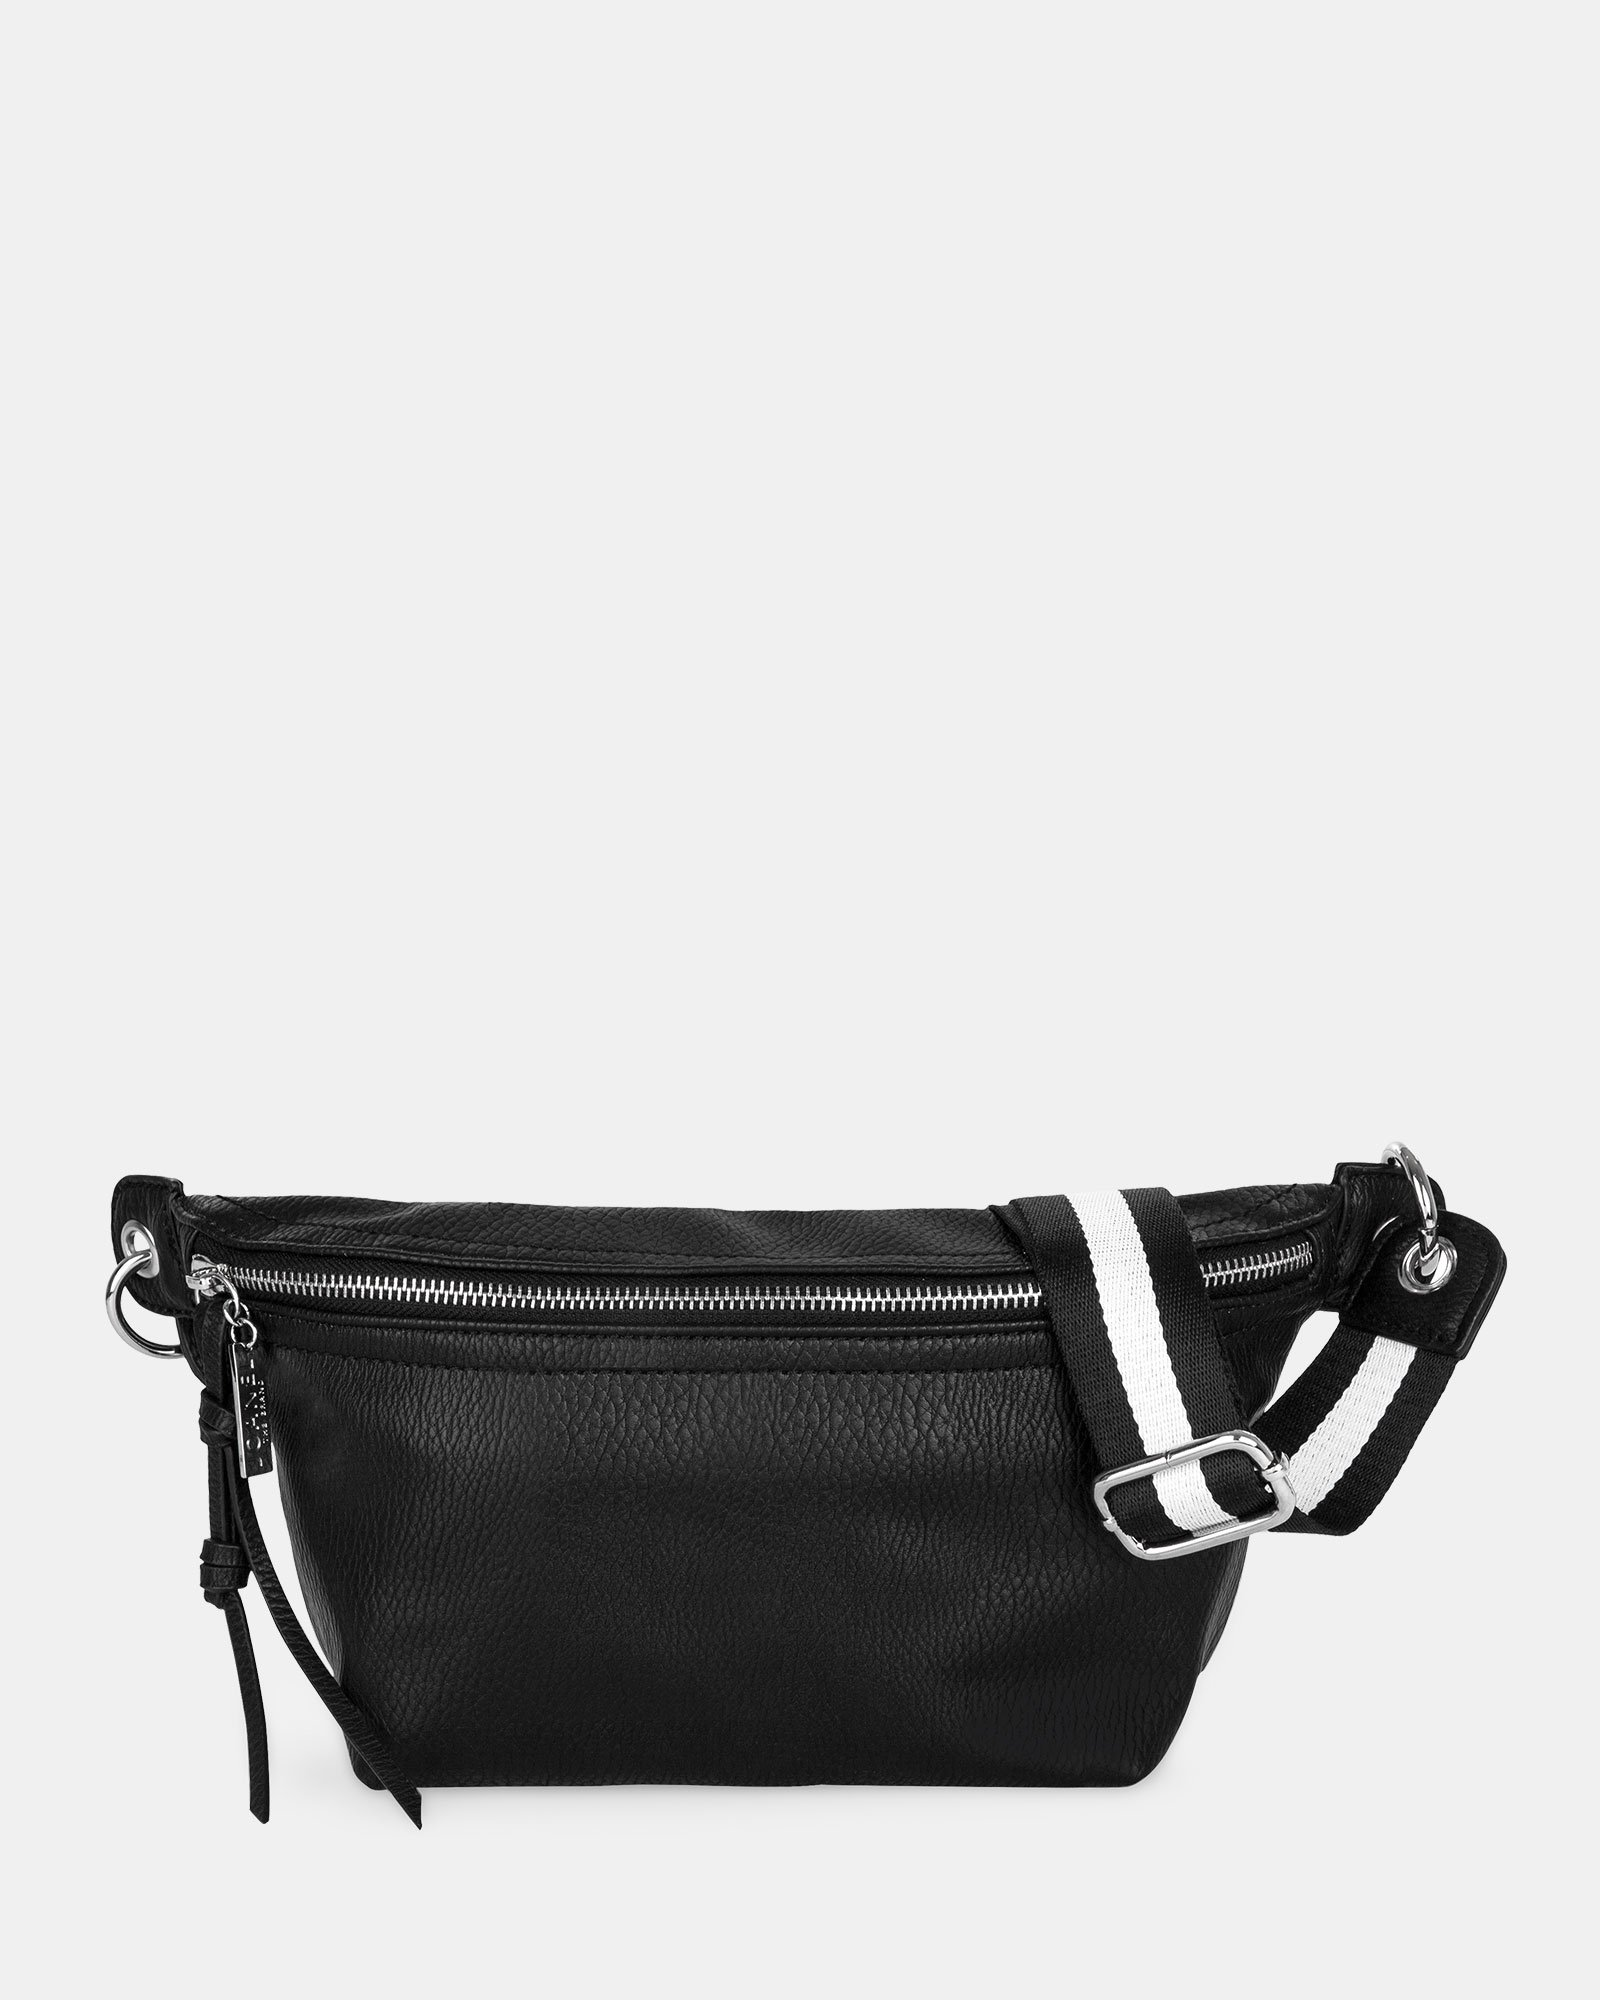 FANNY - Money belt with Main zippered compartment - Black - Joanel - Zoom